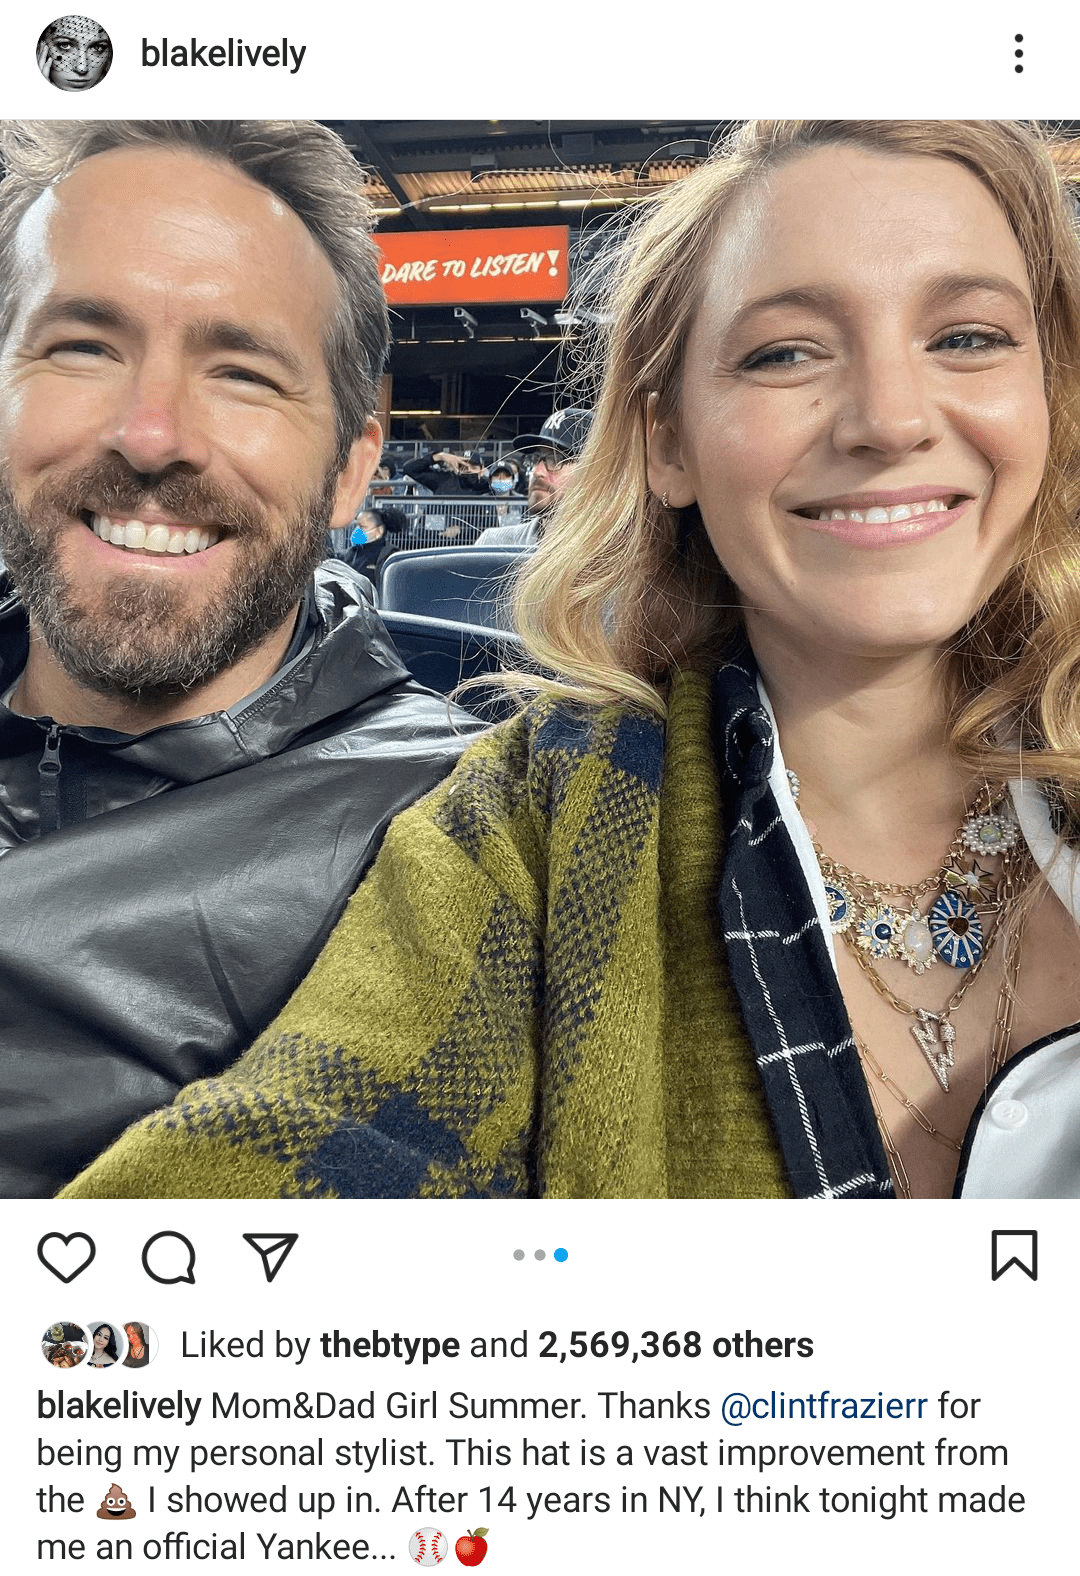 Ryan Reynolds and Blake Lively at a baseball game | Photo: Instagram/blakelively